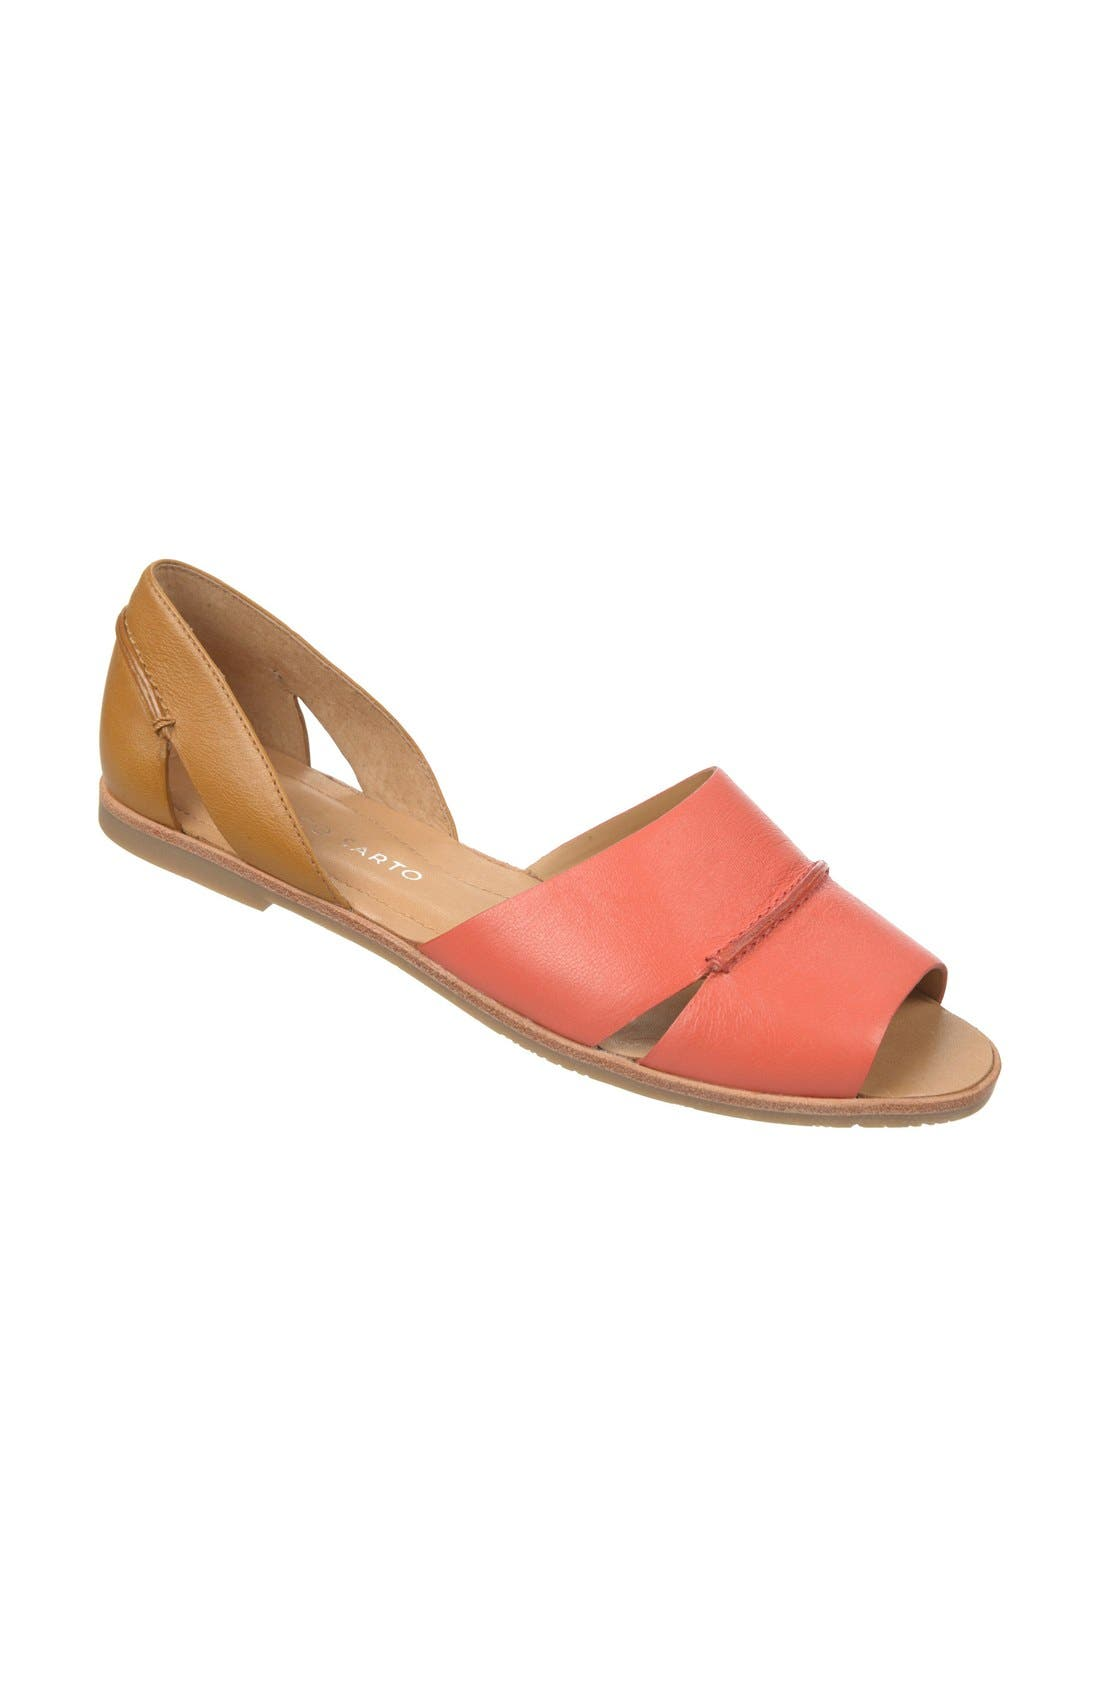 'Vivace' Leather d'Orsay Flat,                         Main,                         color, Coral/ Tan